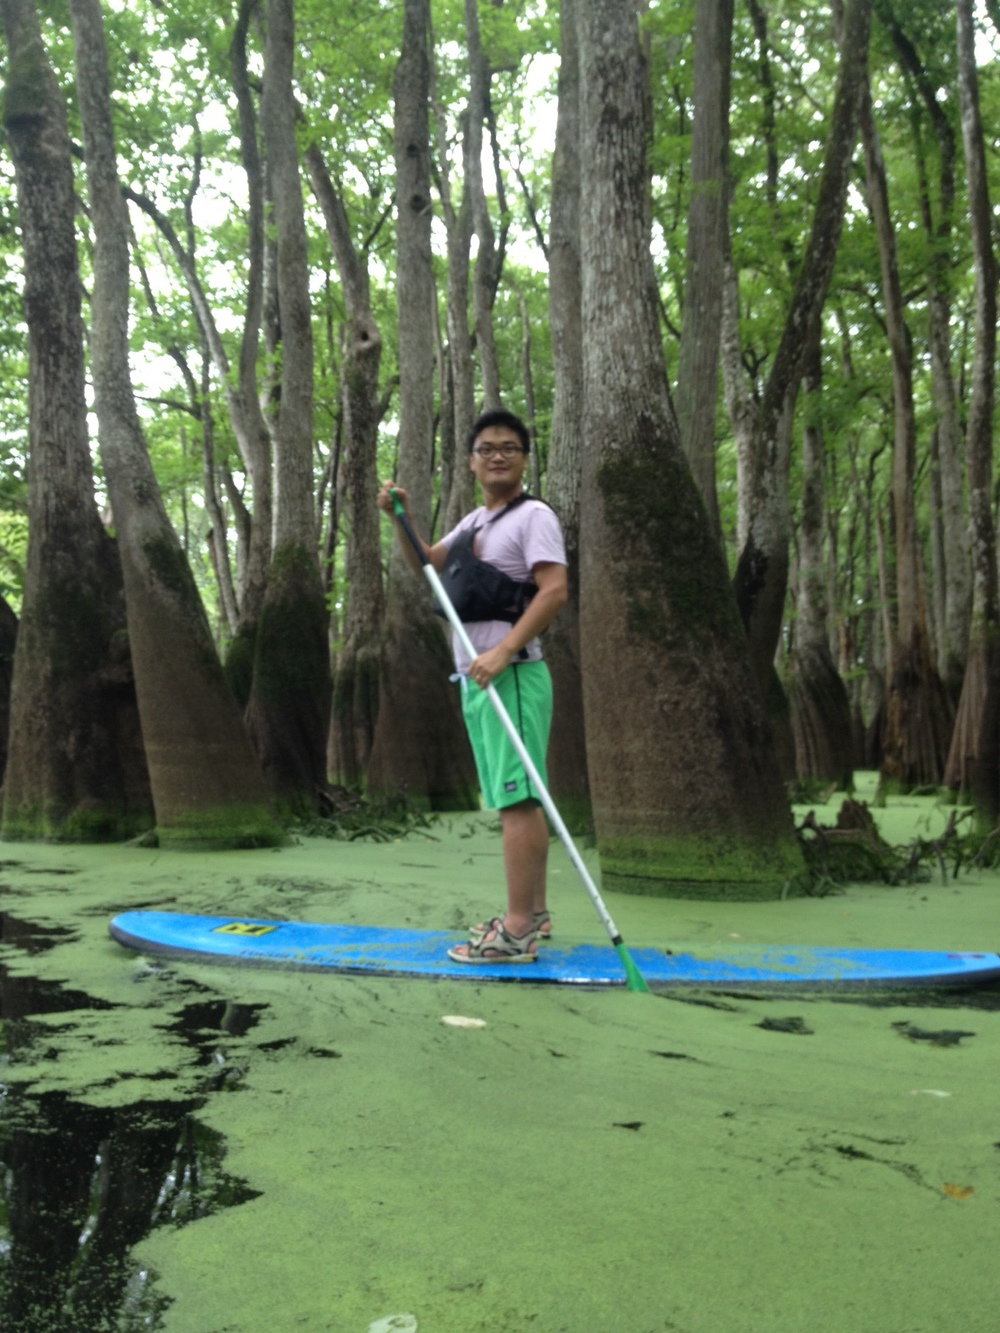 Having fun SUPing.JPG